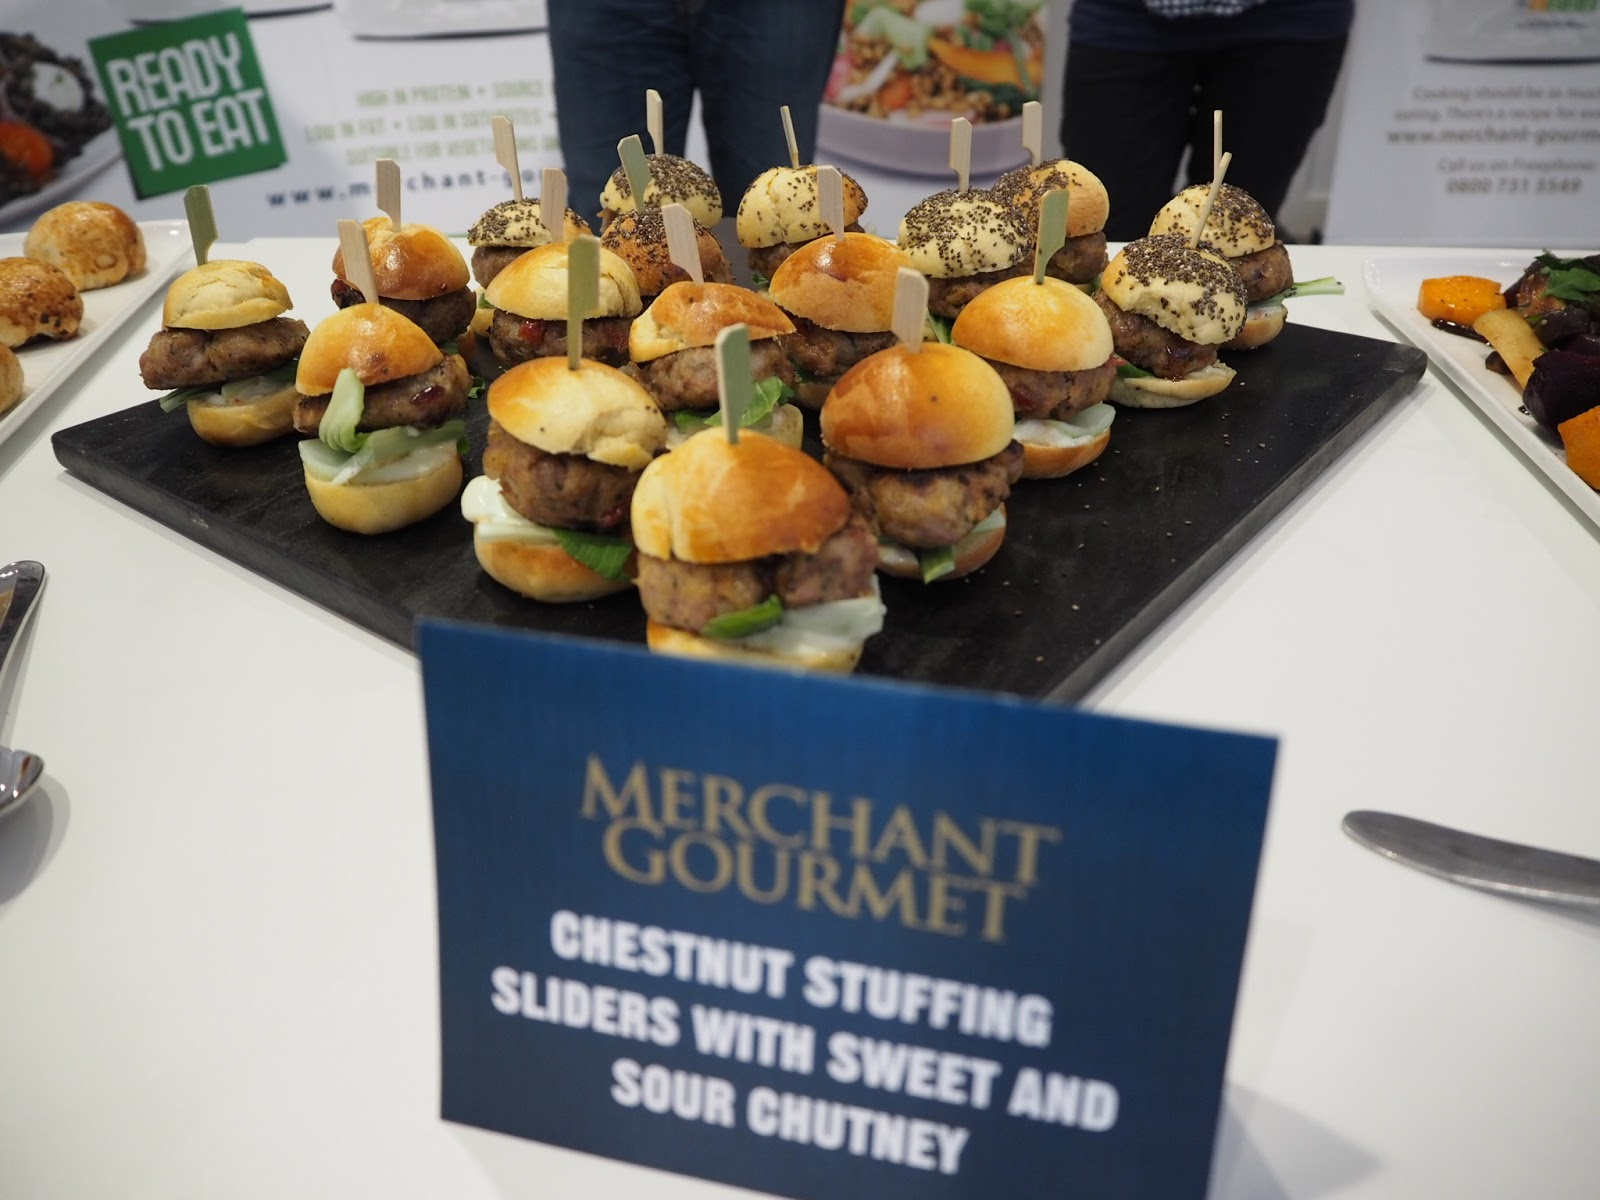 Recipe made with Merchant Gourmet Chestnuts